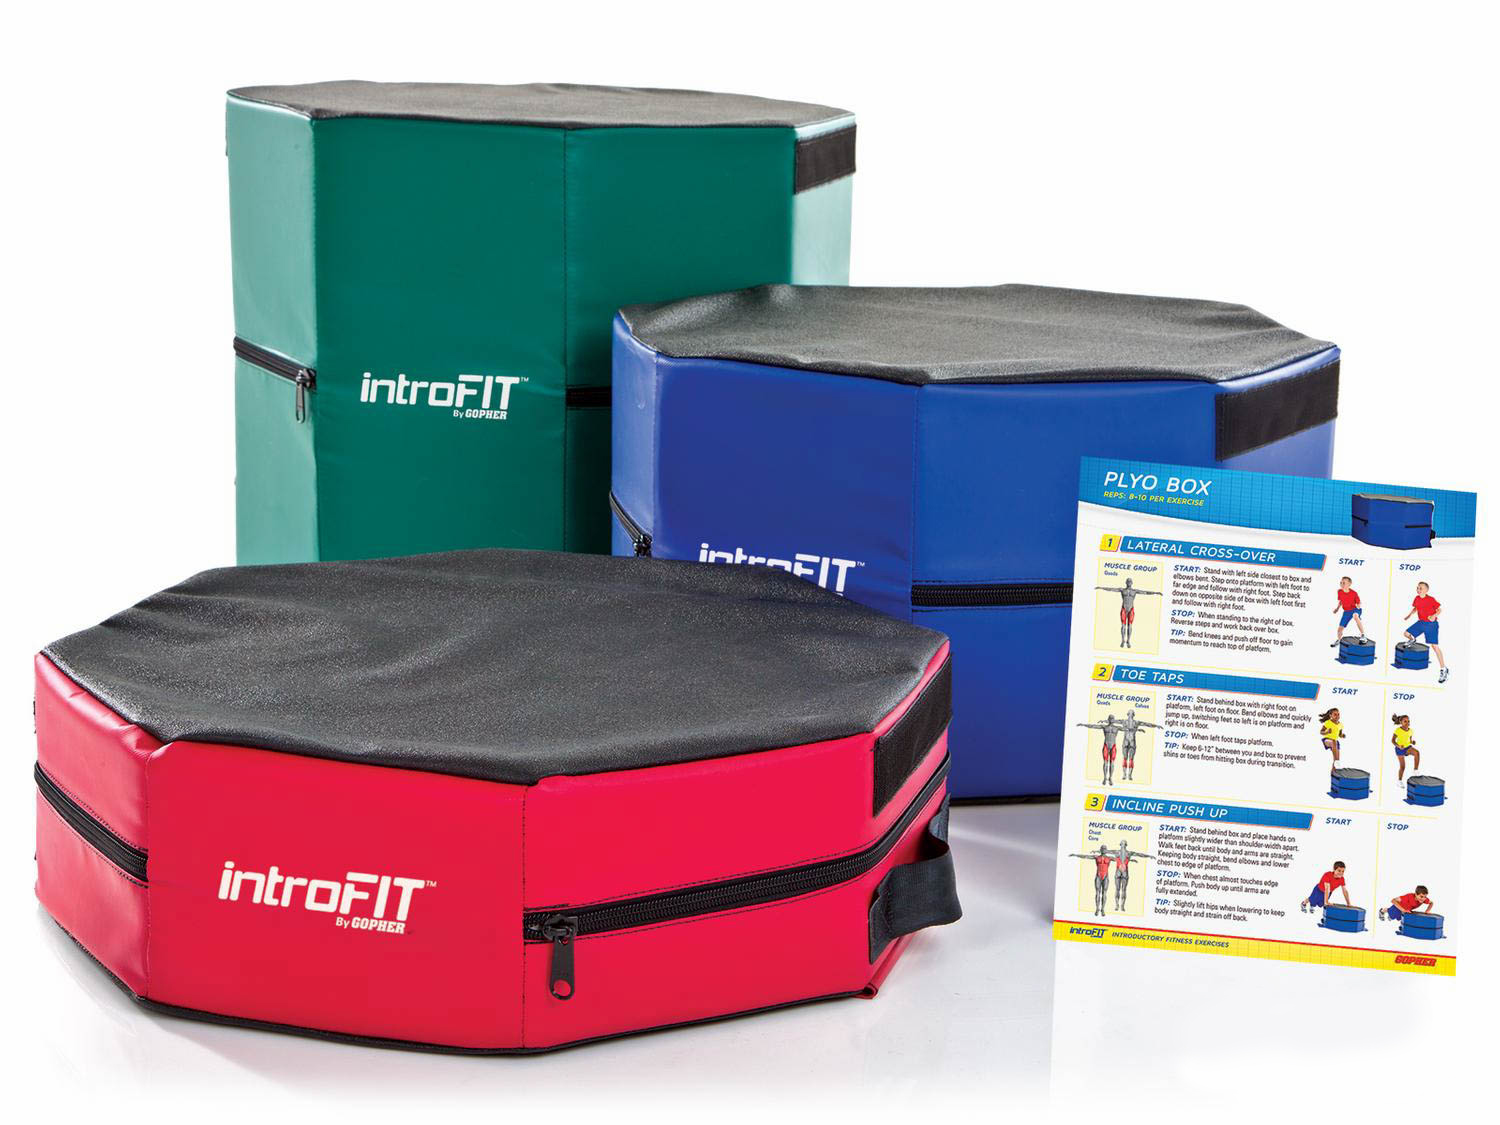 Introfit Plyo Box Gopher Sport